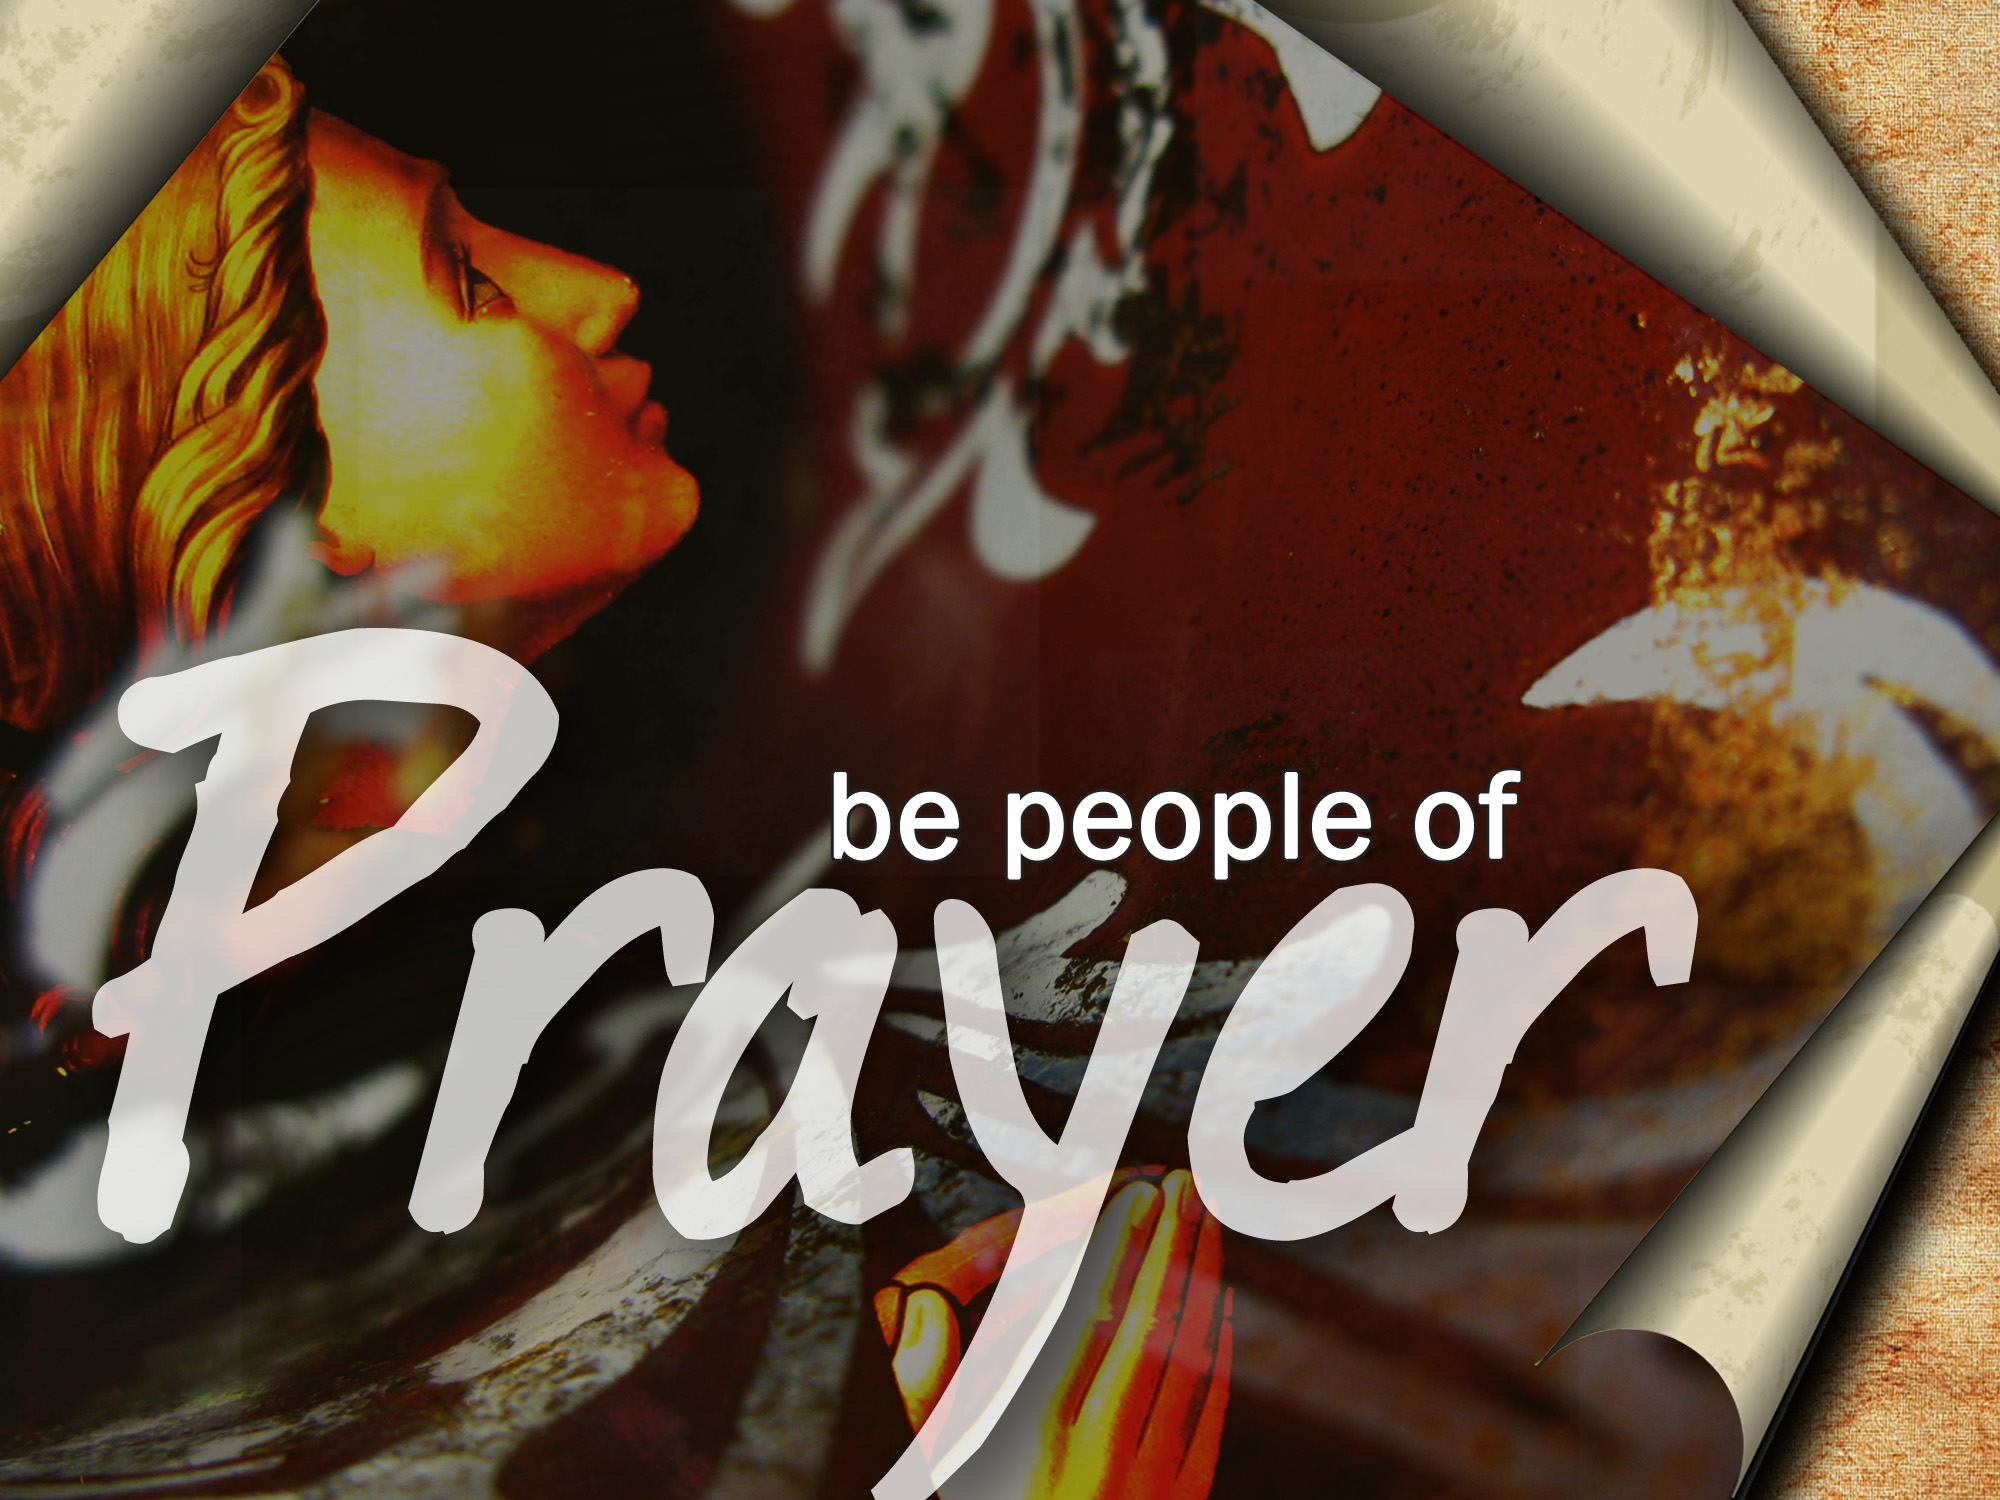 prayer-people